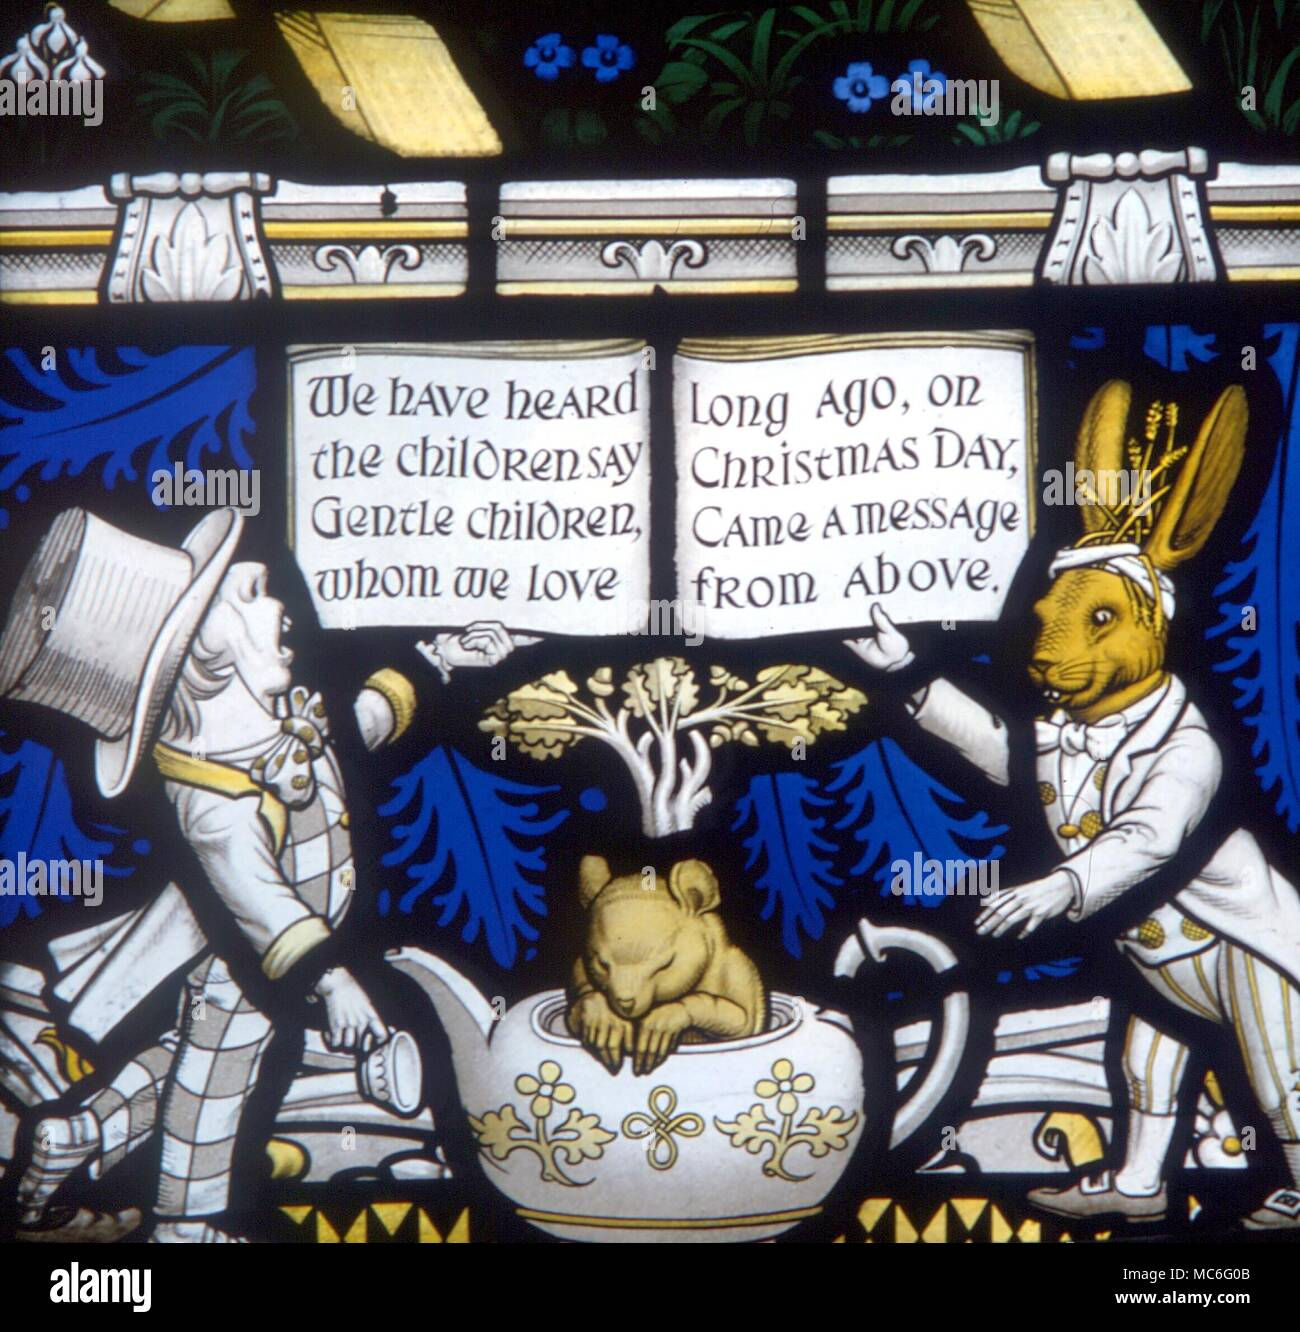 ANIMALS - Detail of the March Hare, the Mad Hatter and the Dormouse, on the Lewis Carroll memorial window at Daresbury Parish Church. Designed by Geoffrey Webb, and dedicated in 1934  Dormouse, Hare and Mad Hatter - detail of the Lewis Carroll memorial window at Daresbury - Stock Image